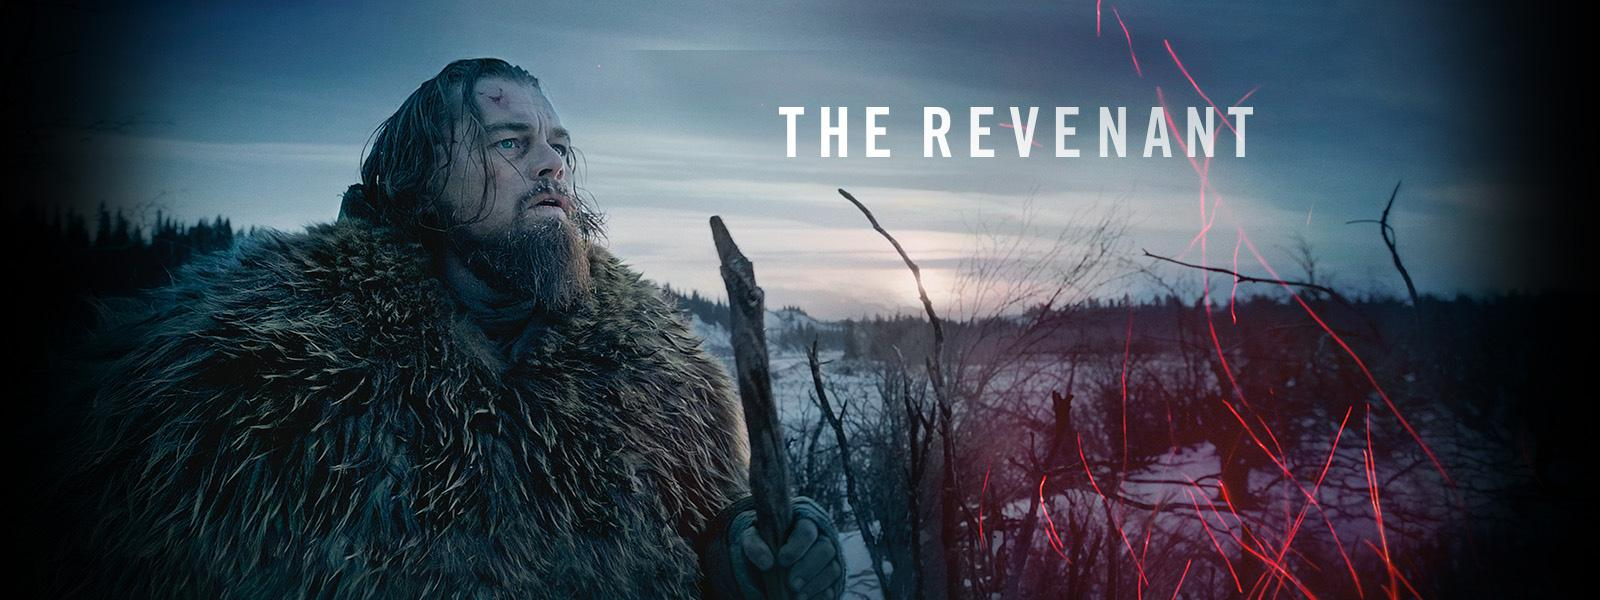 The Revenant Stream Online